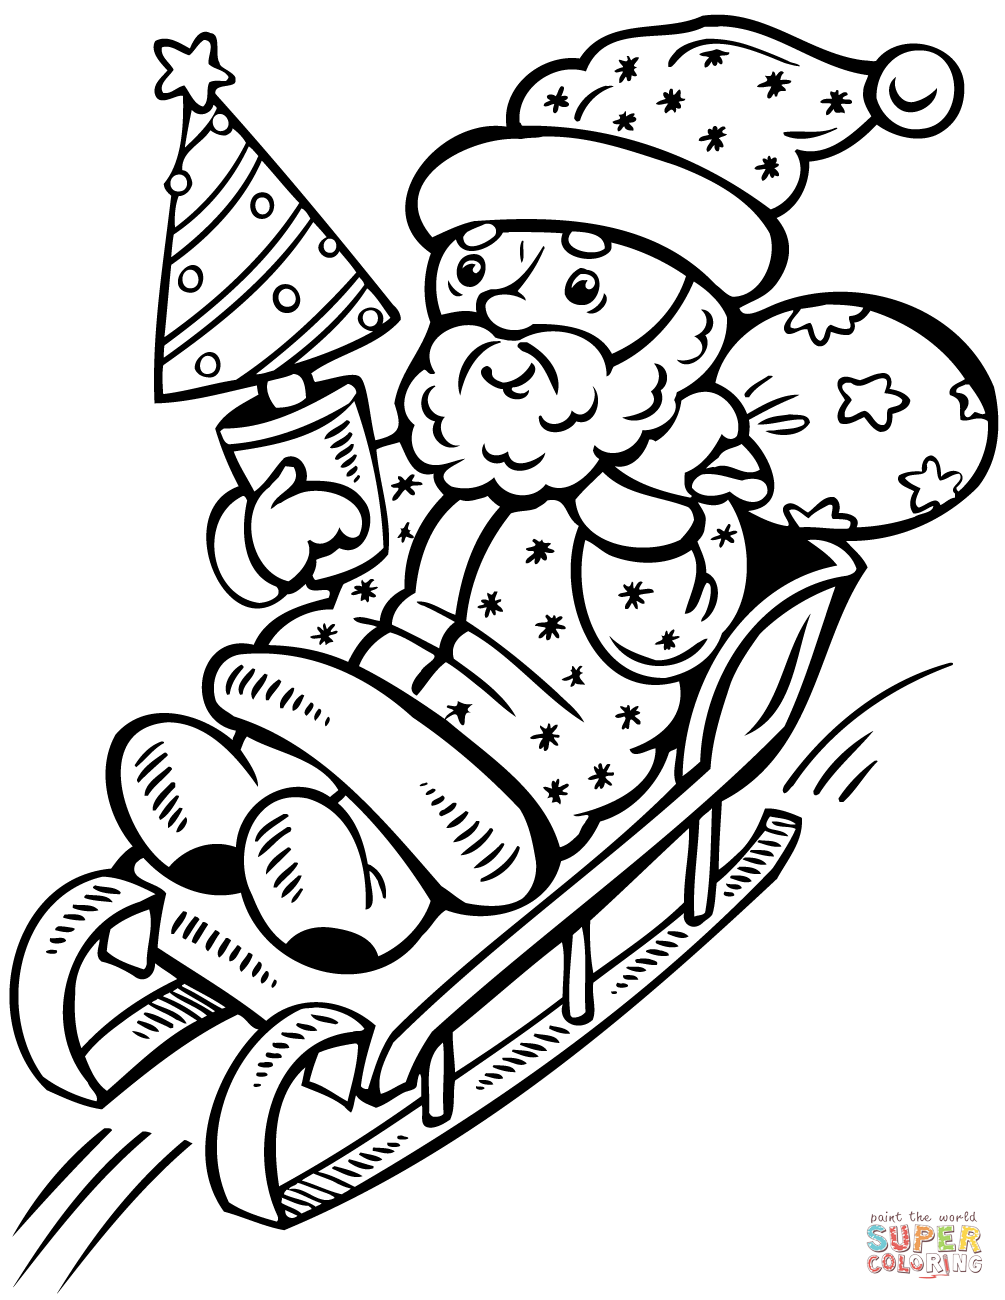 Santa On Sleigh Coloring Page With Claus Christmas Tree Free